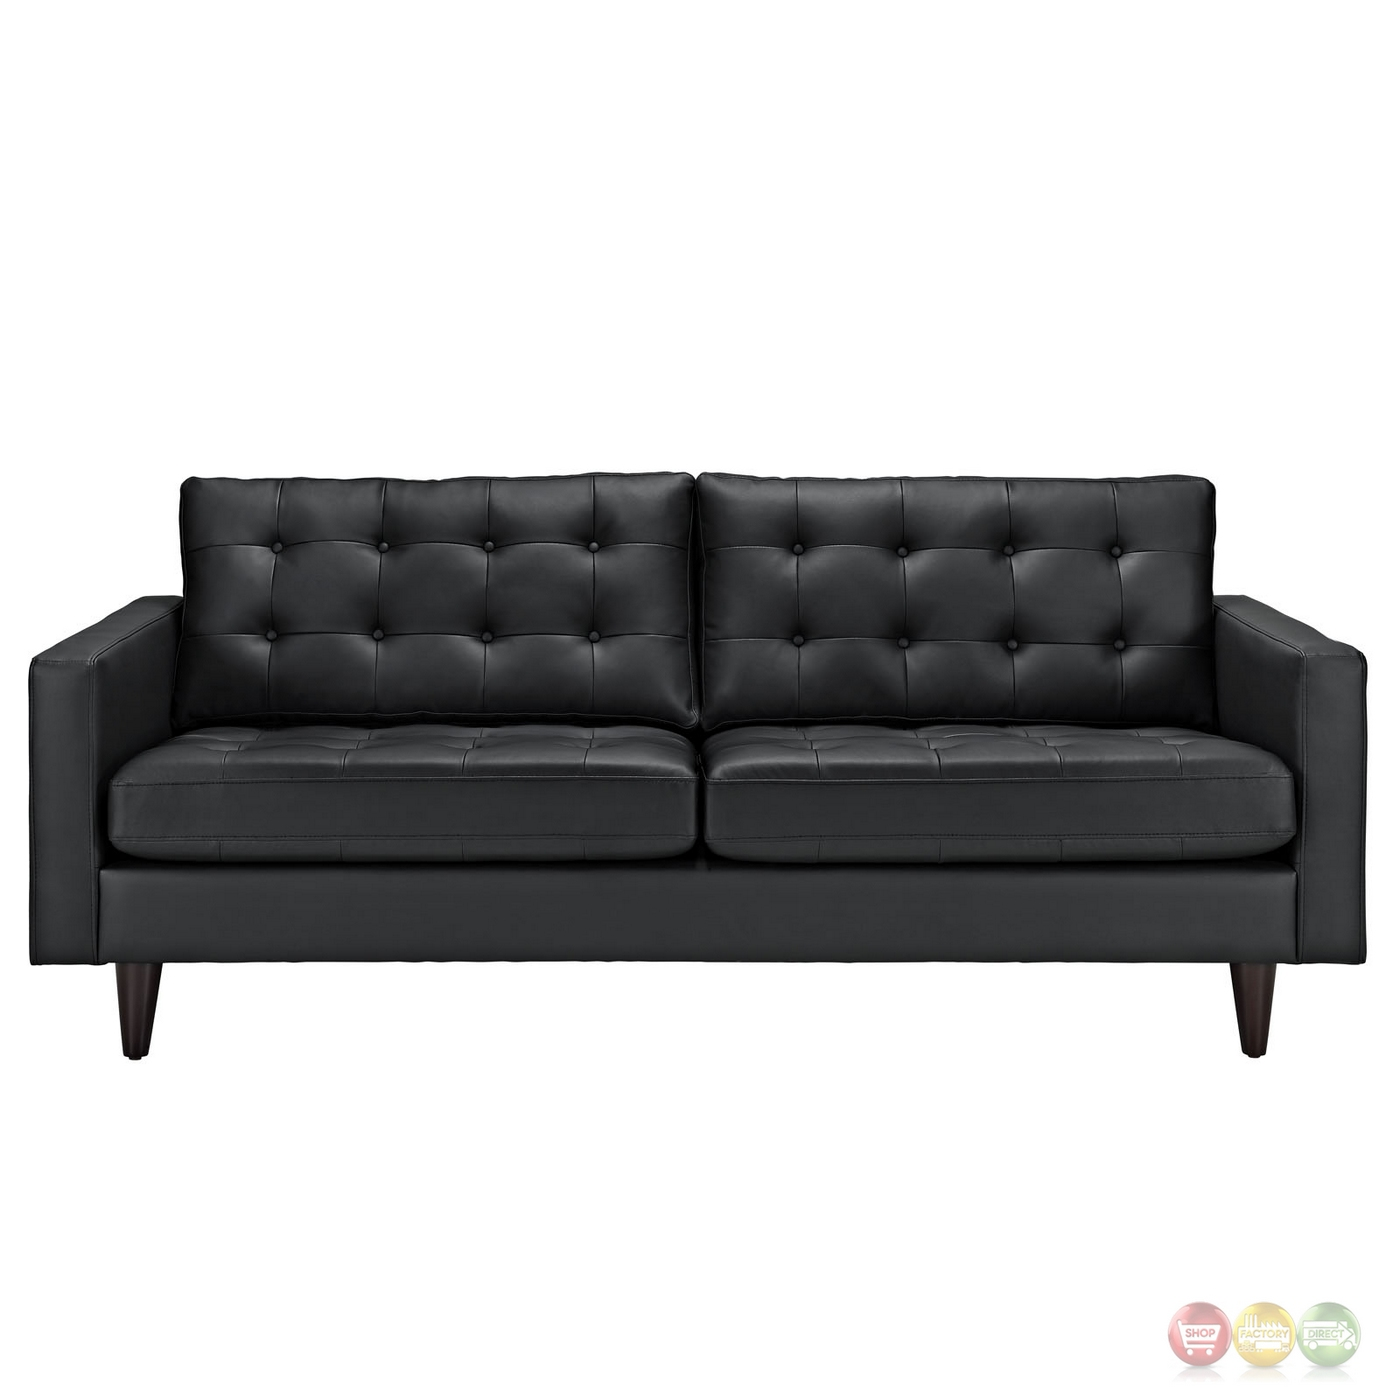 Empress Contemporary Button-tufted Leather Sofa, Black